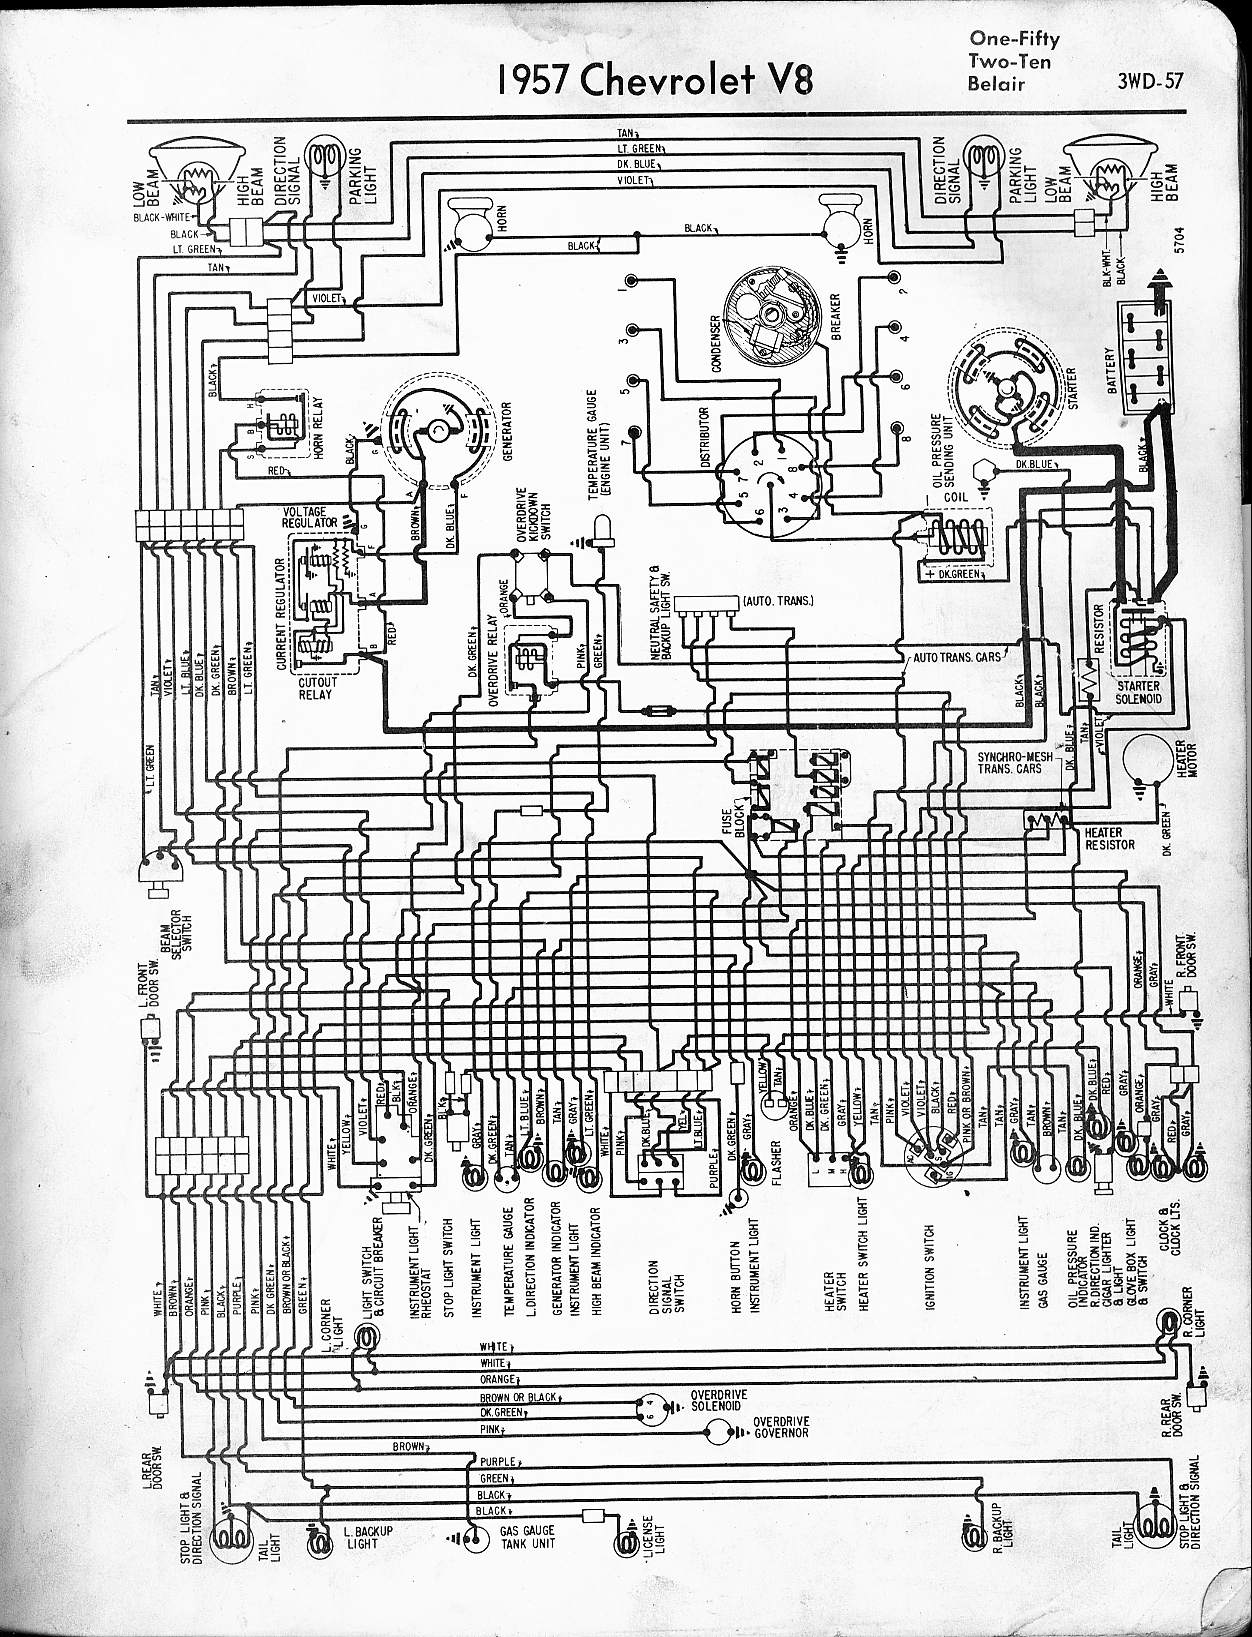 57 - 65 chevy wiring diagrams, Wiring diagram